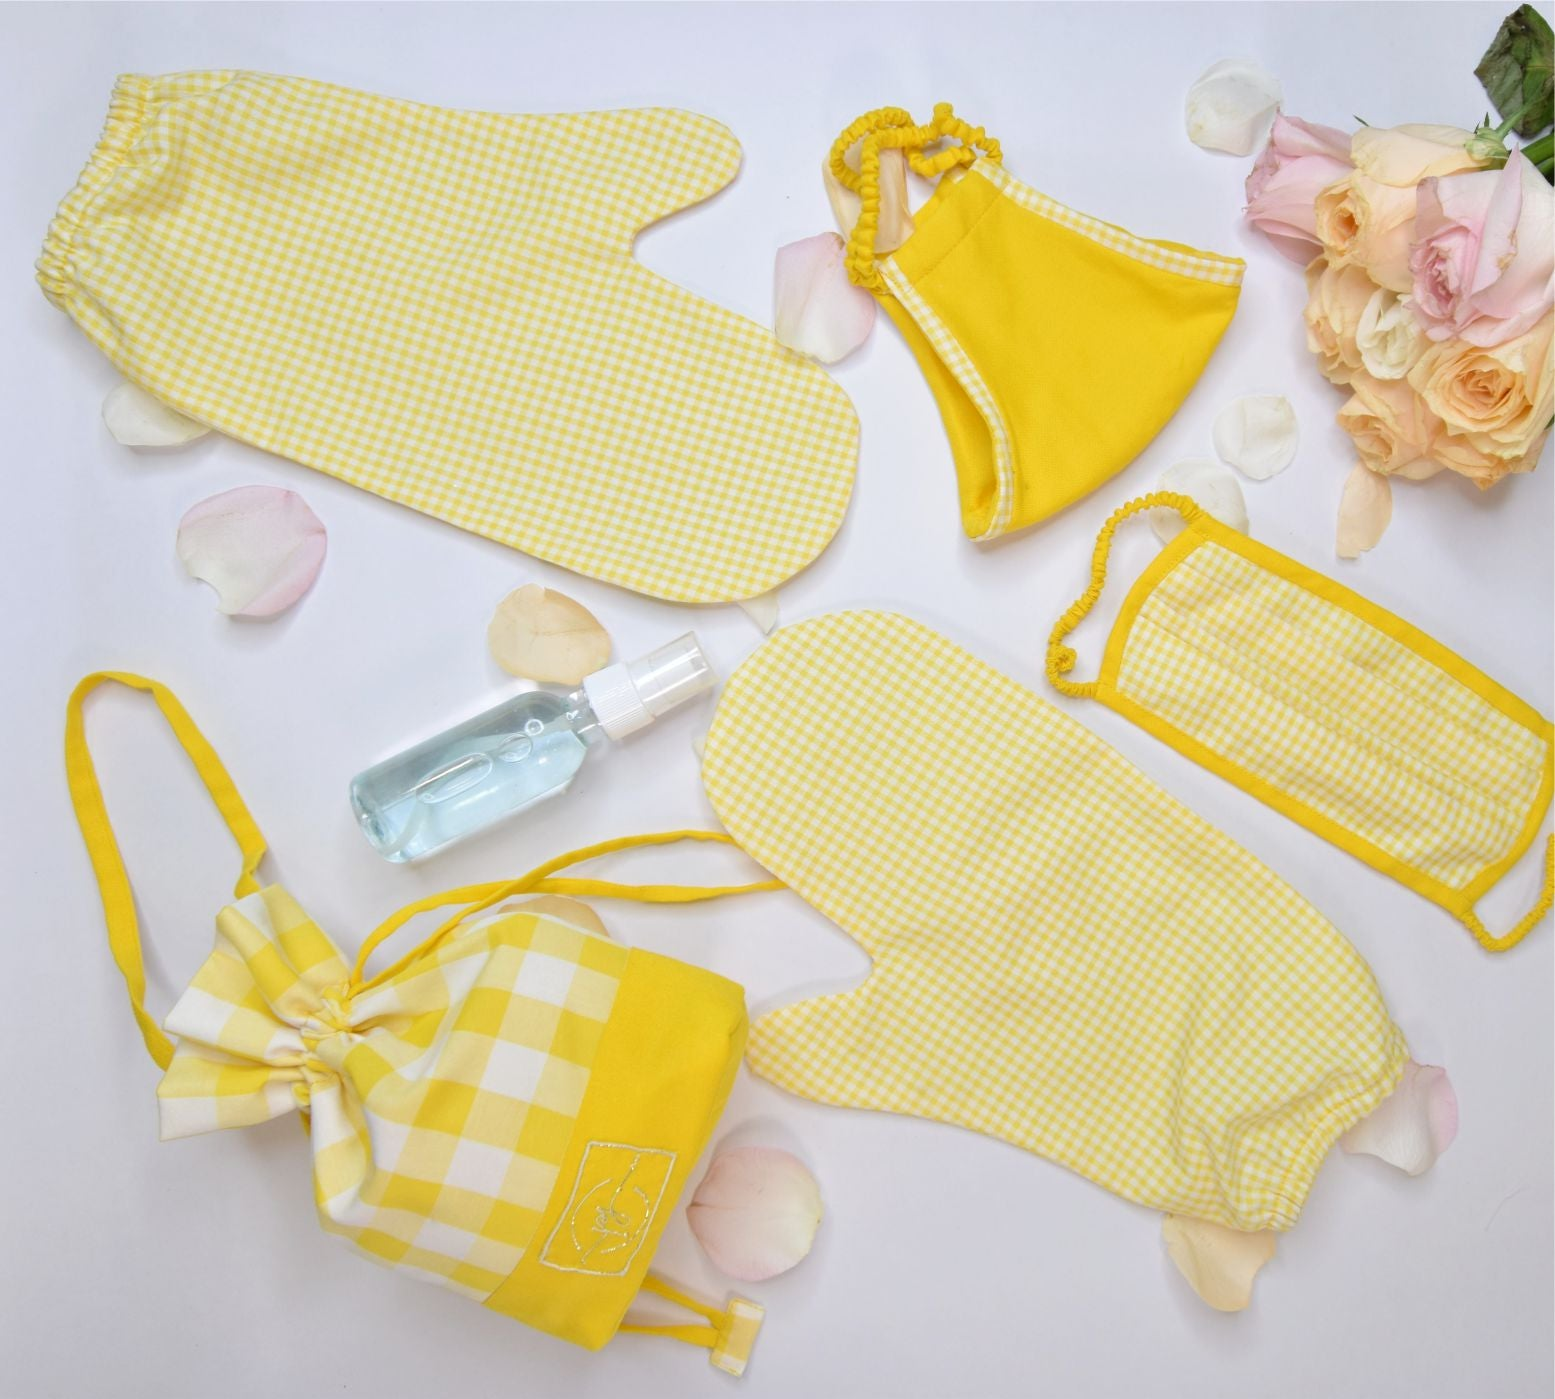 Yellow check cotton based safety Shopping essential kit